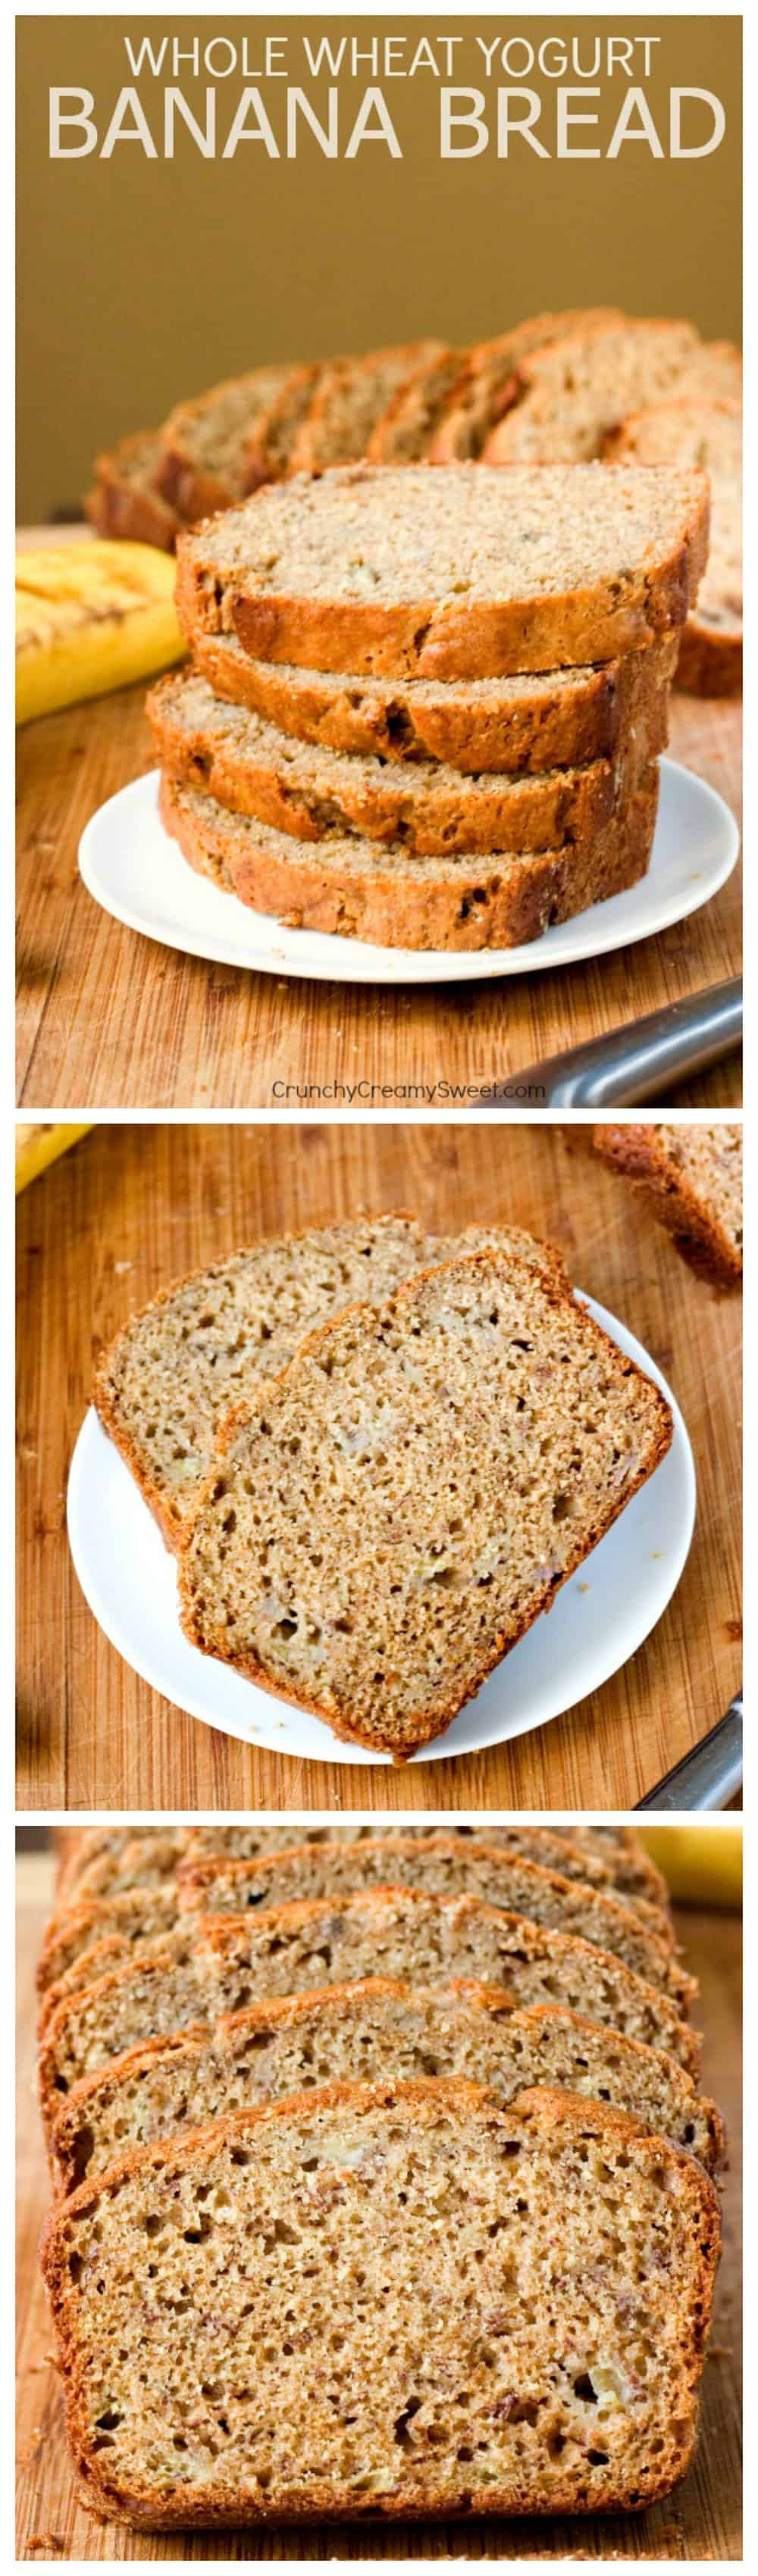 Good Banana Bread Recipe With Chocolate Chips